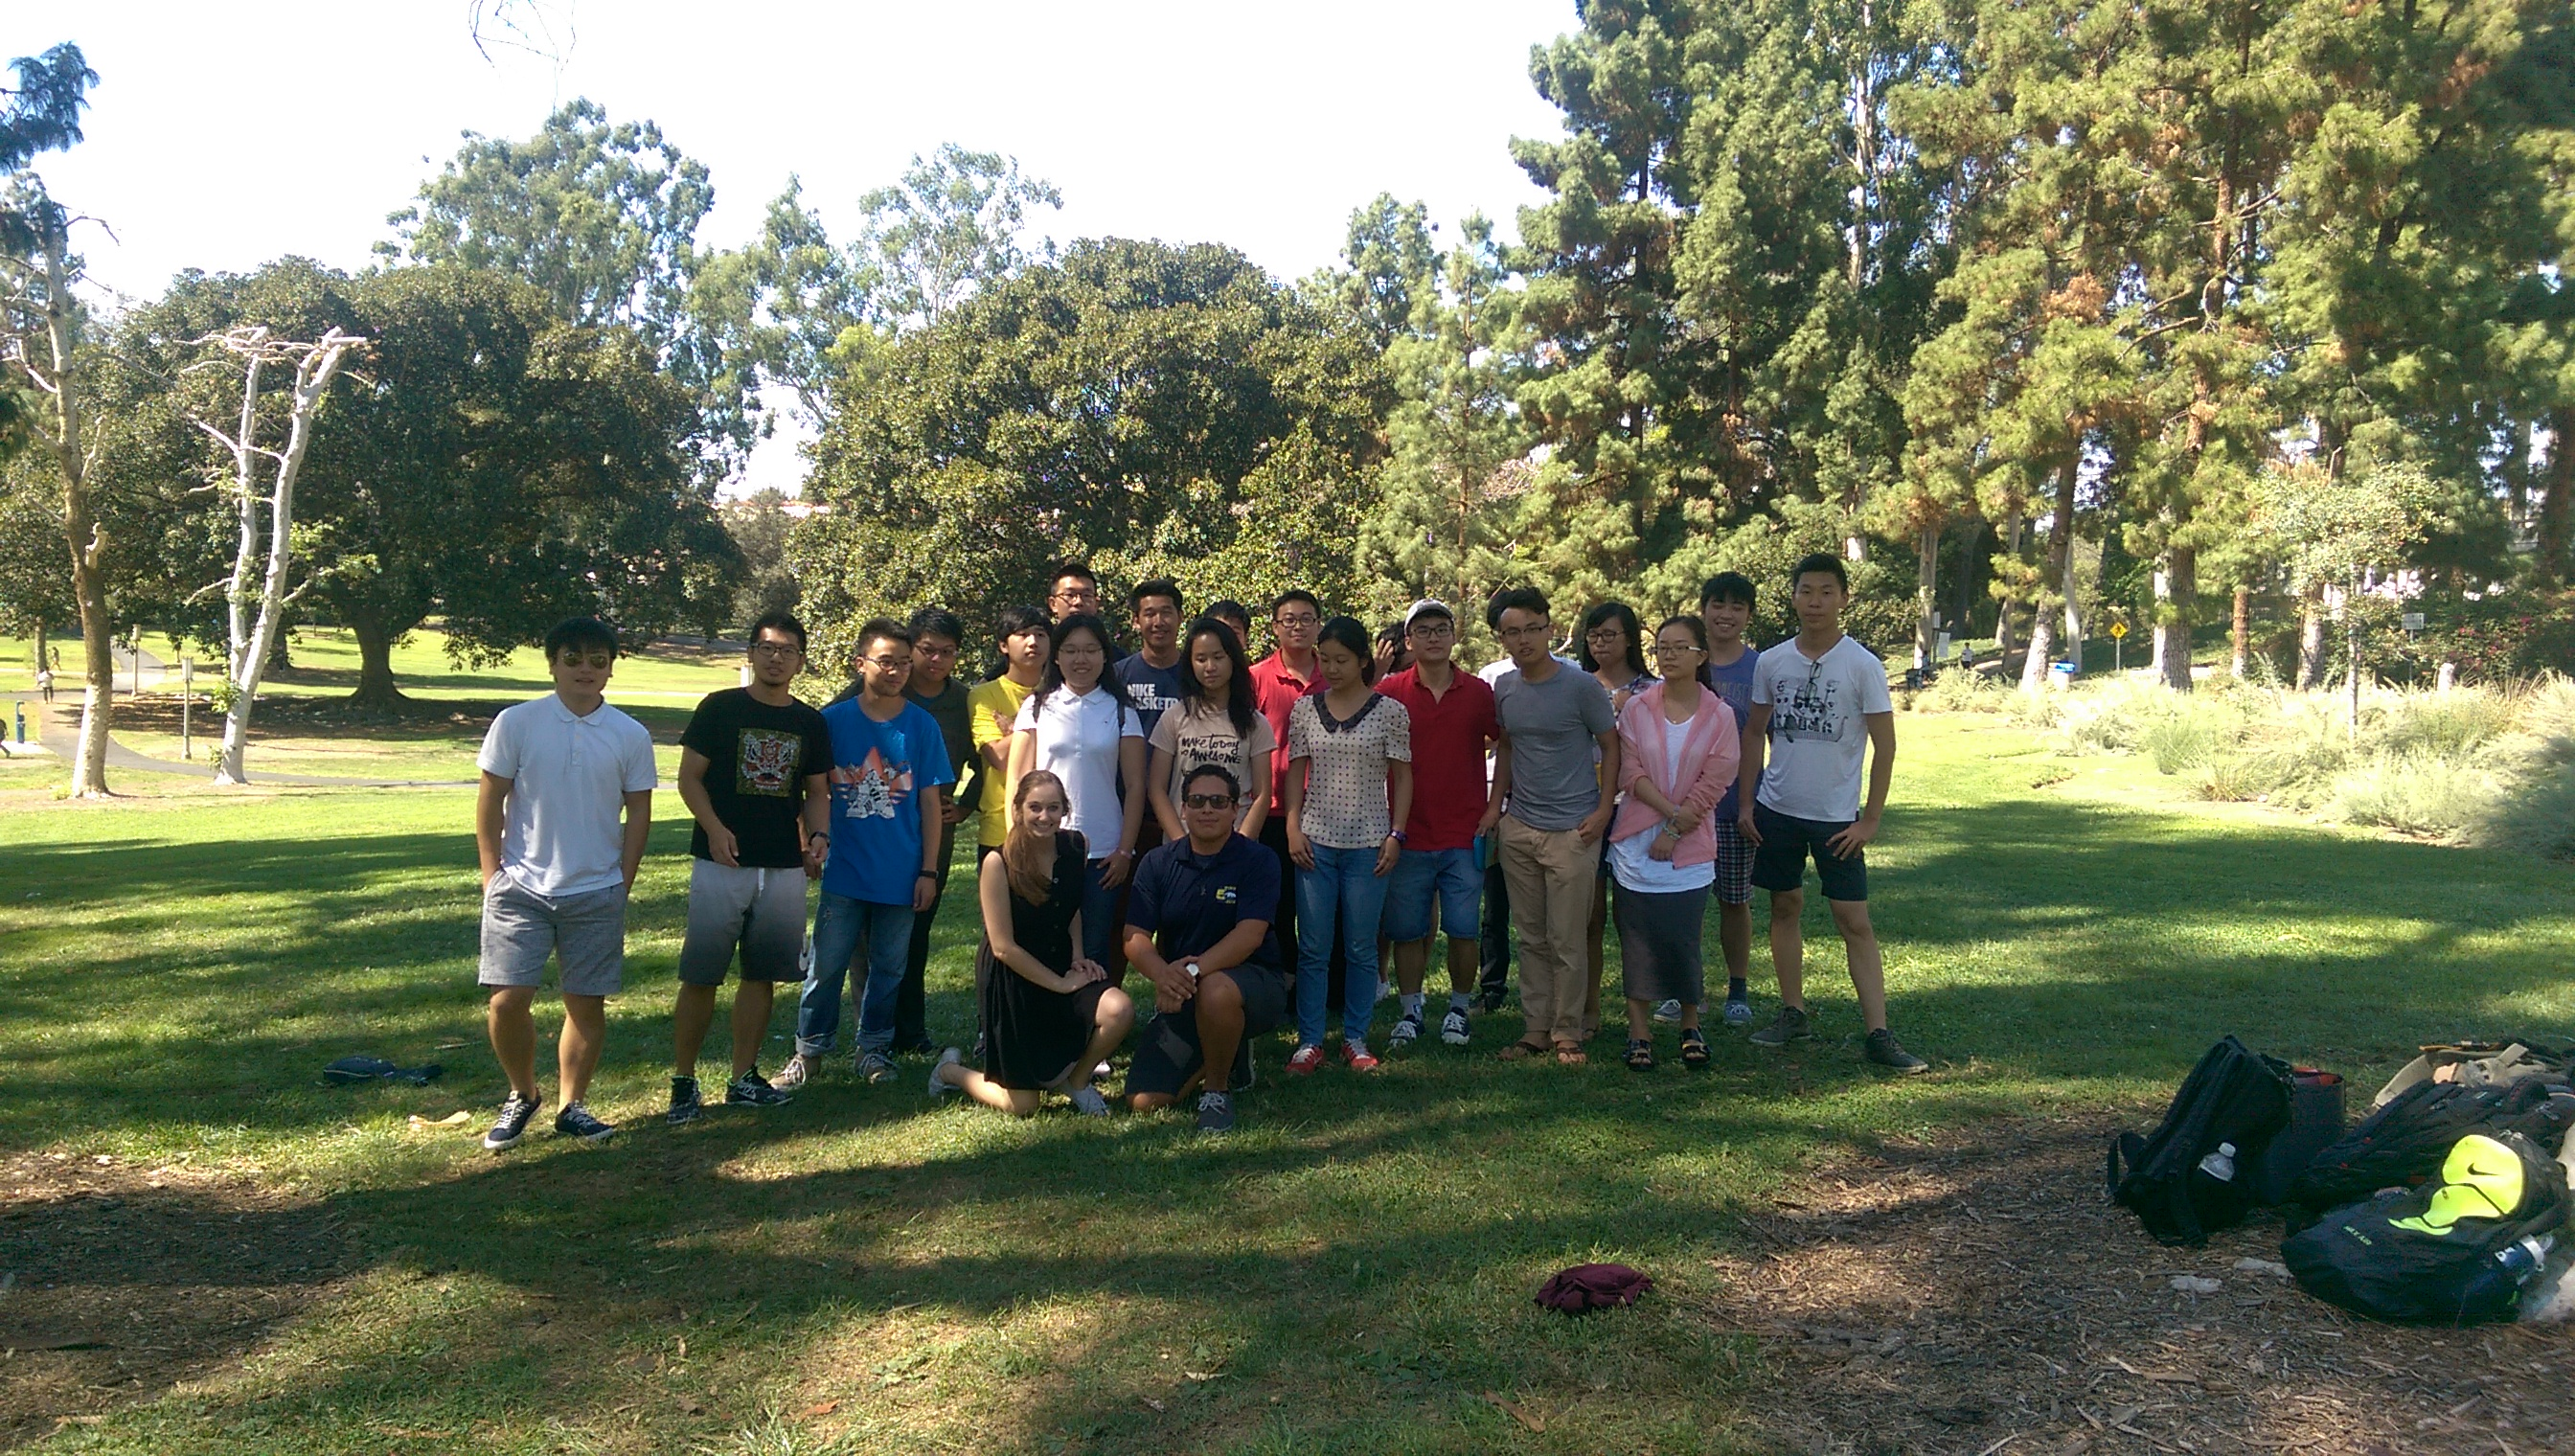 Intl Student - Games in Park Fall 15